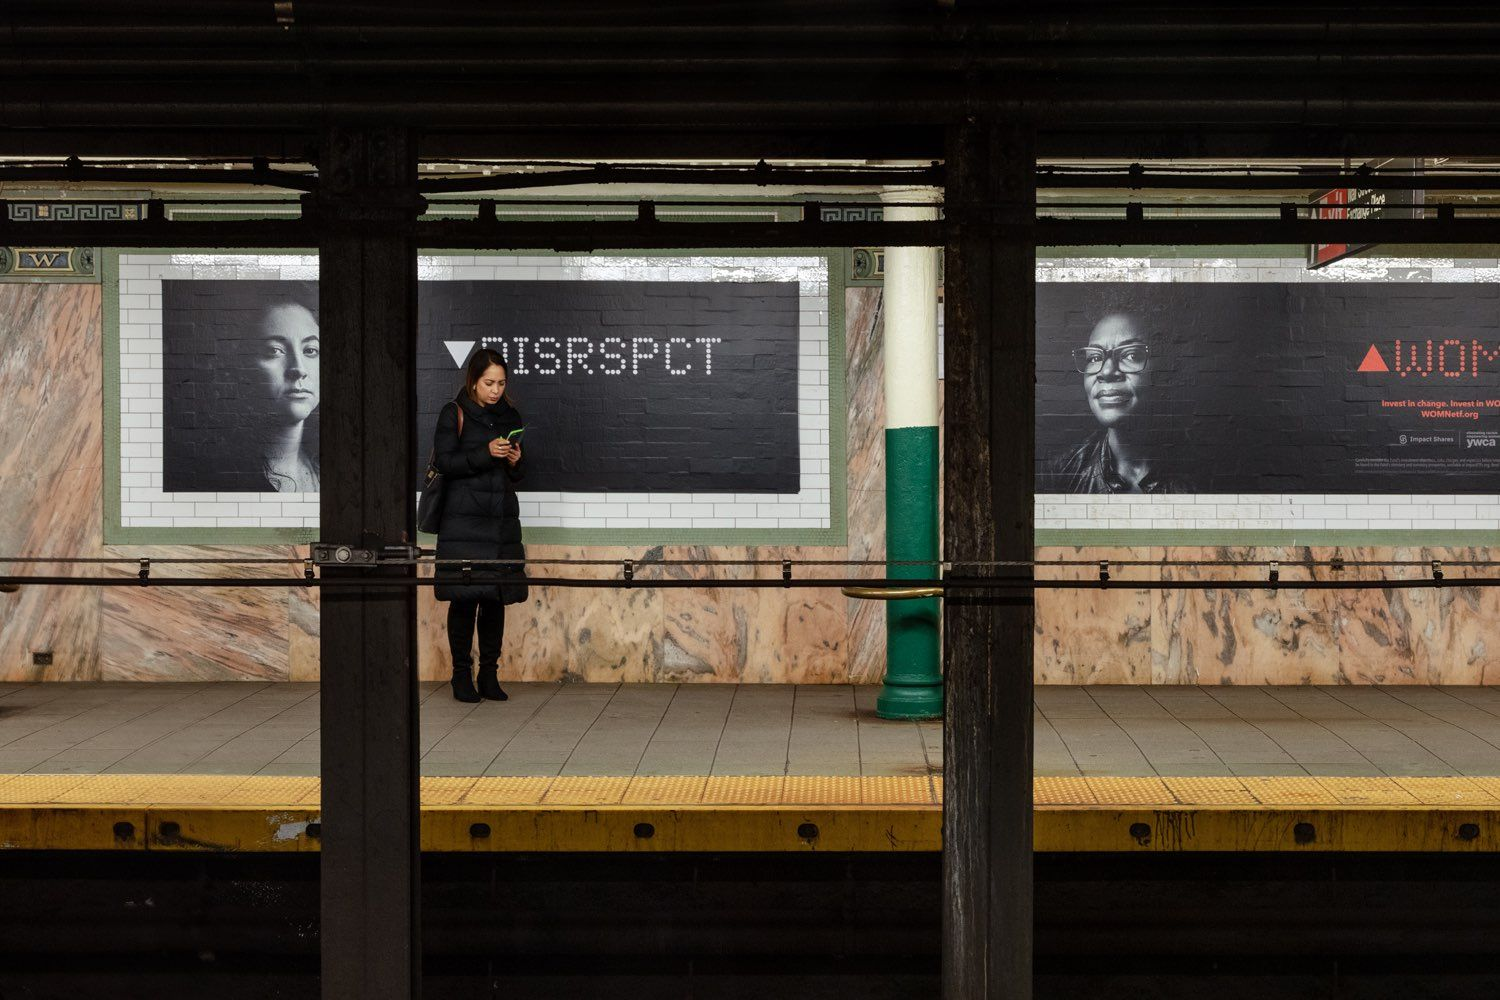 DISRSPCT/Disrespect subway poster for Impact Shares' WOMN campaign.